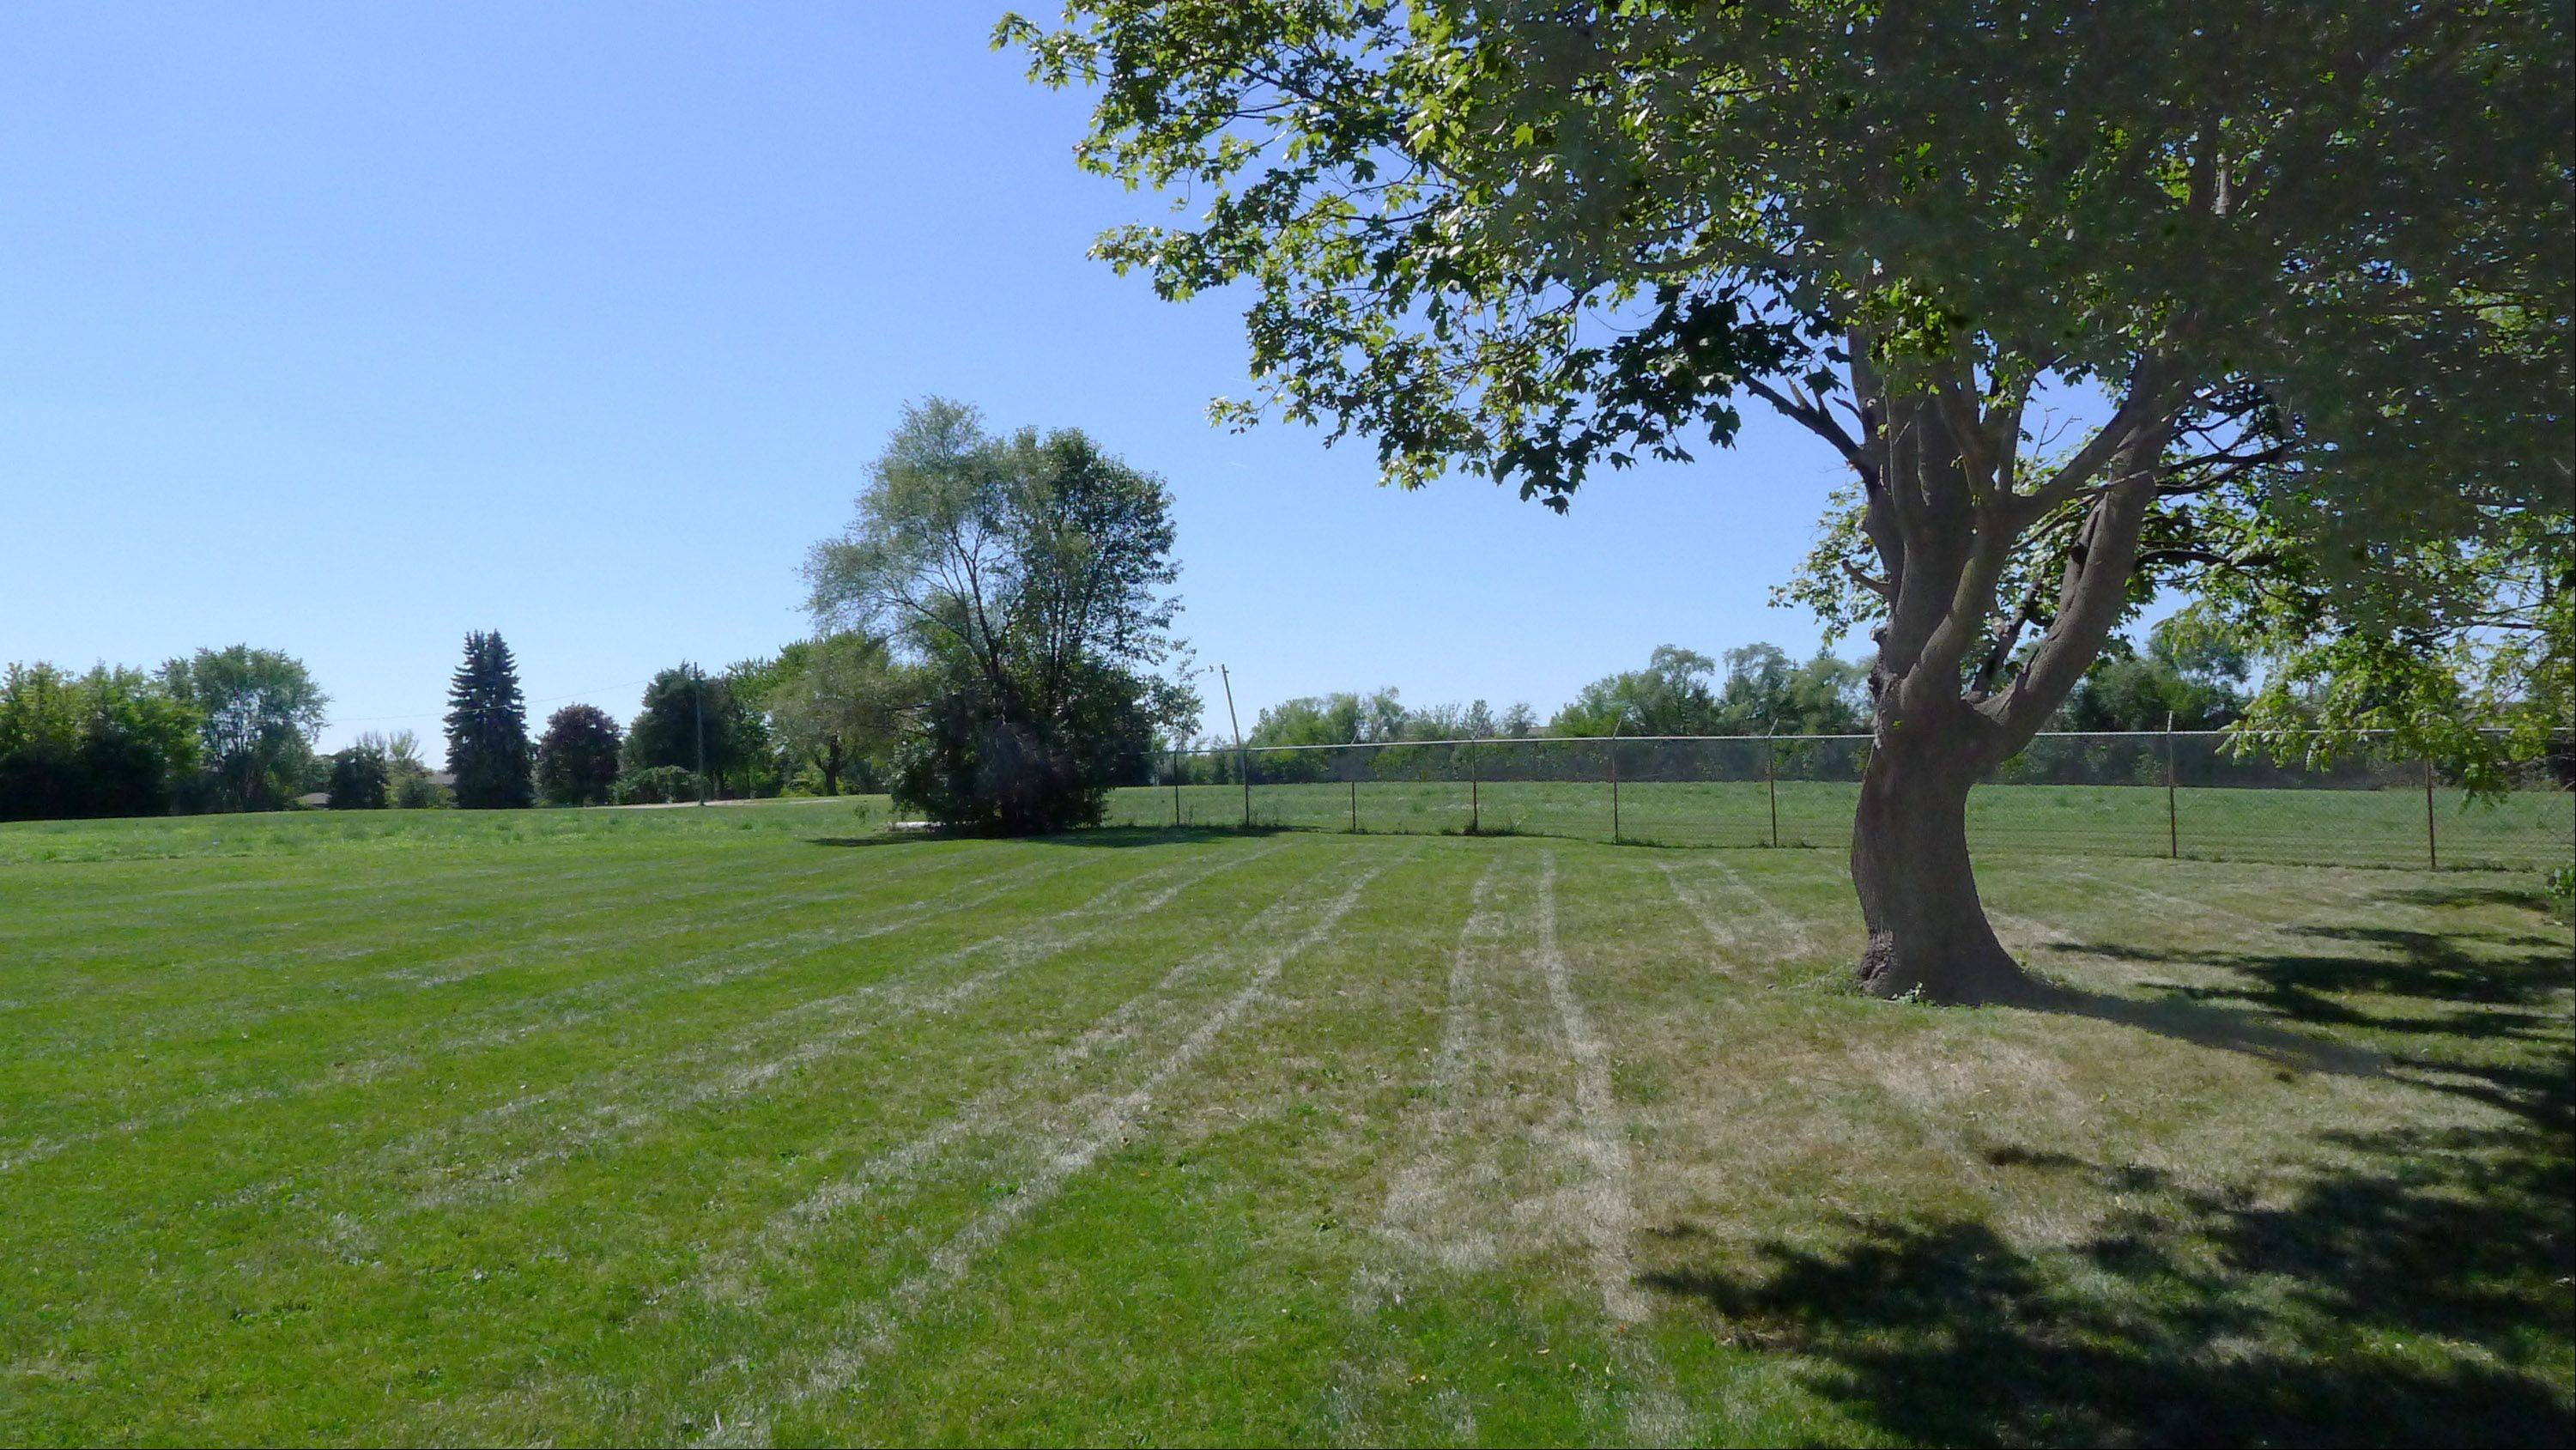 A vacant 7½-acre property on Kuhn Road in Carol Stream is being offered for sale for $1.8 million by the Carol Stream Public Library. The site was purchased in 2003 with intentions of building a new library there.